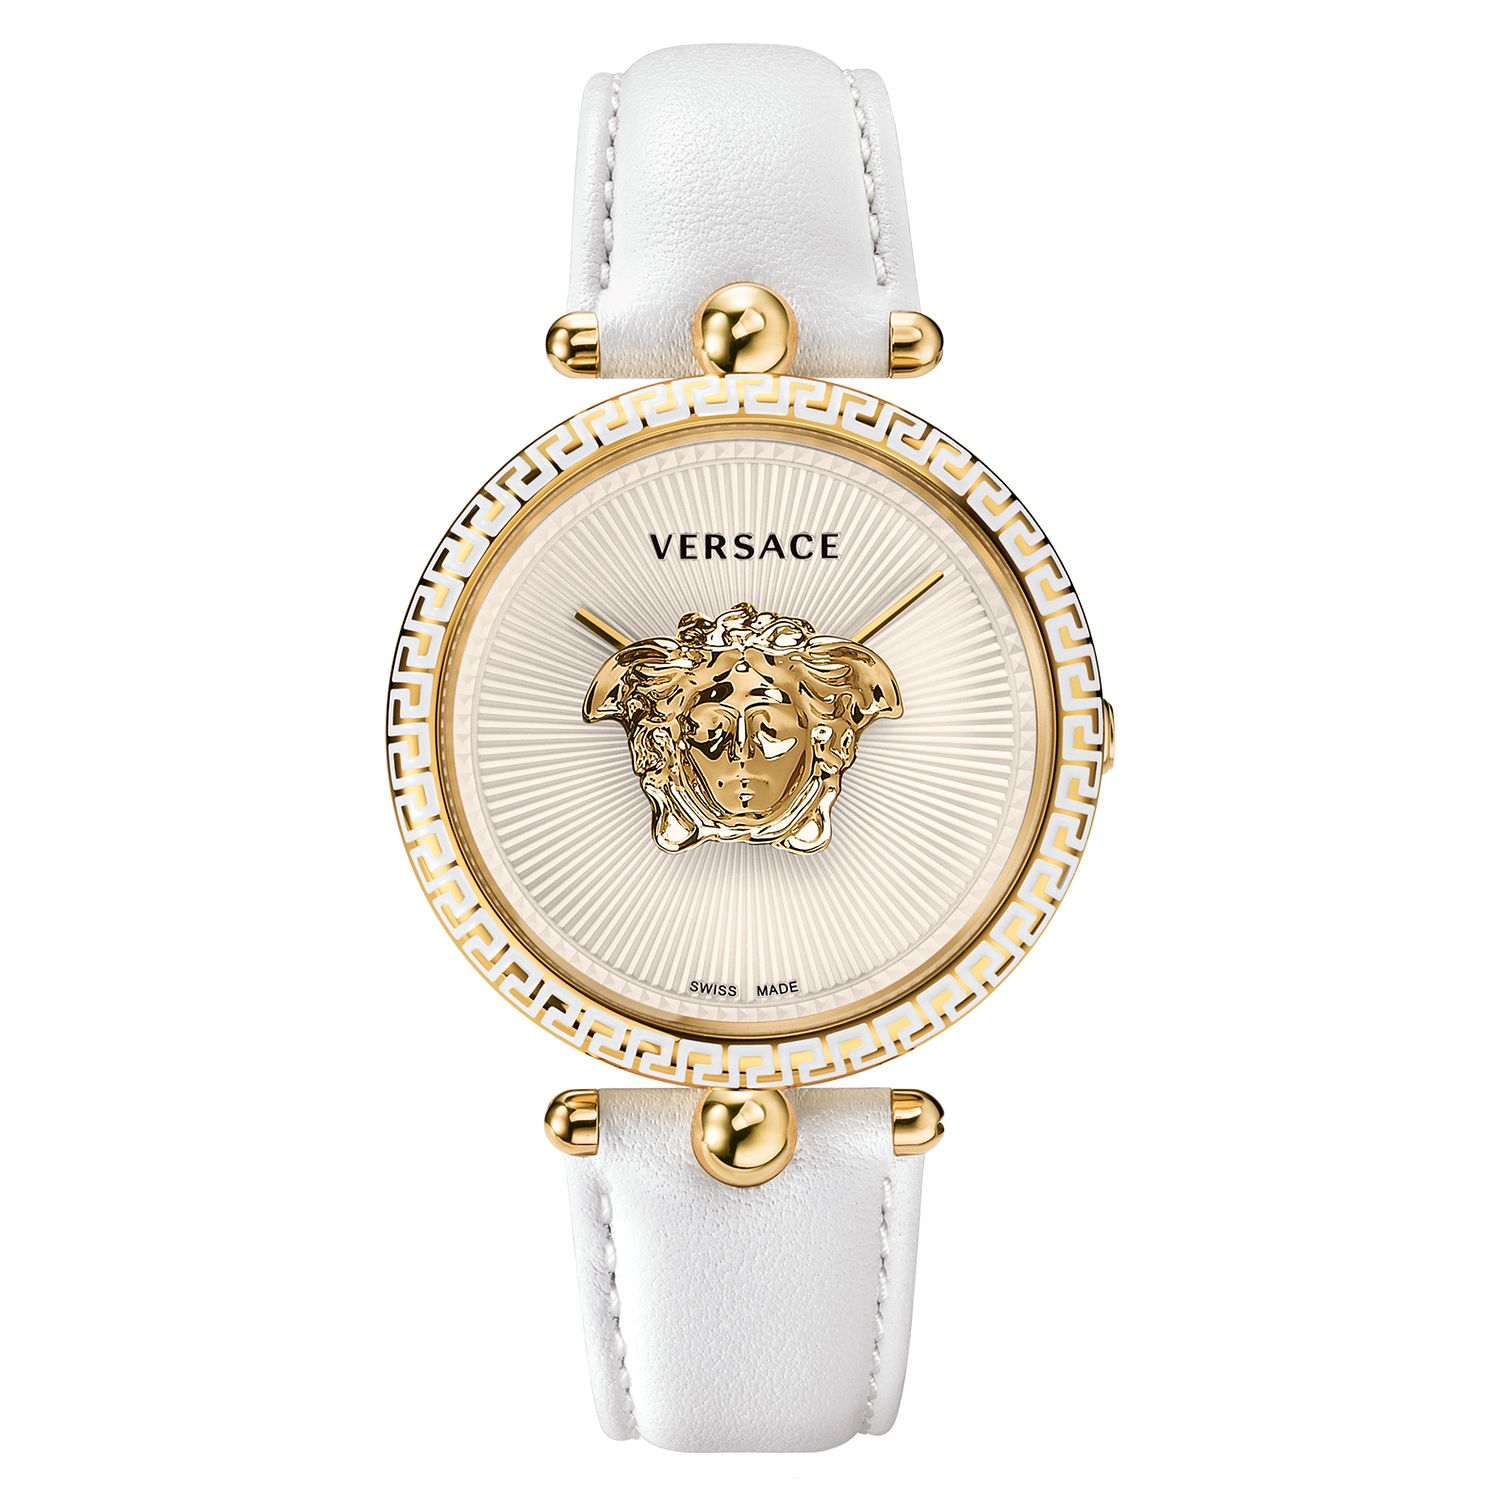 Versace Palazzo Empire Ladies' Gold Tone Strap Watch - Product number 4705254